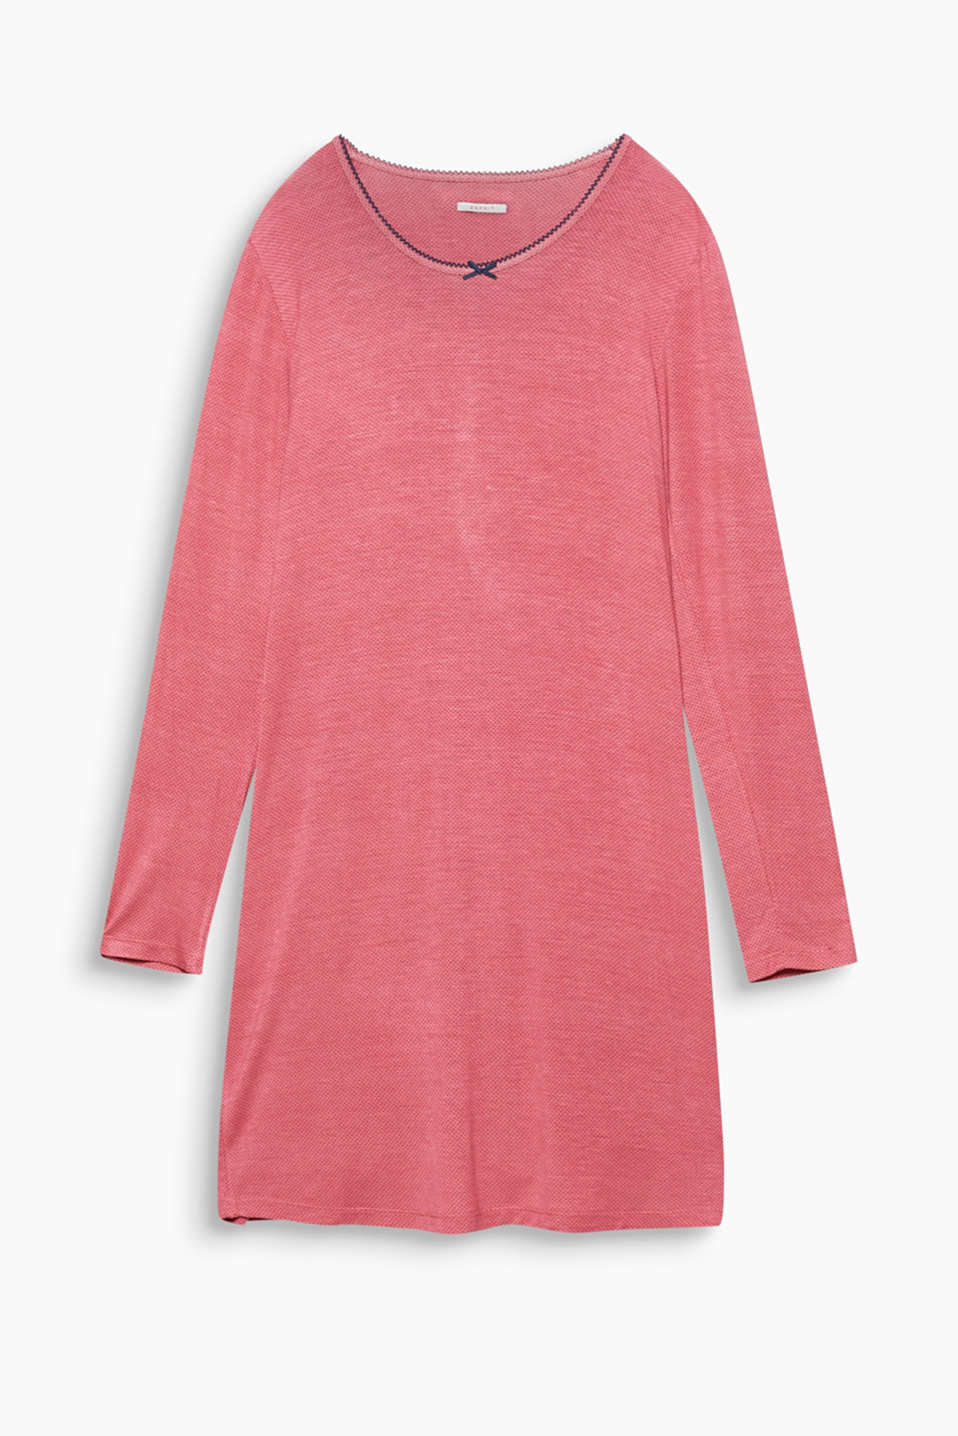 Feminine and flowing – this jersey nightshirt with fine polka dots will have you feeling great!